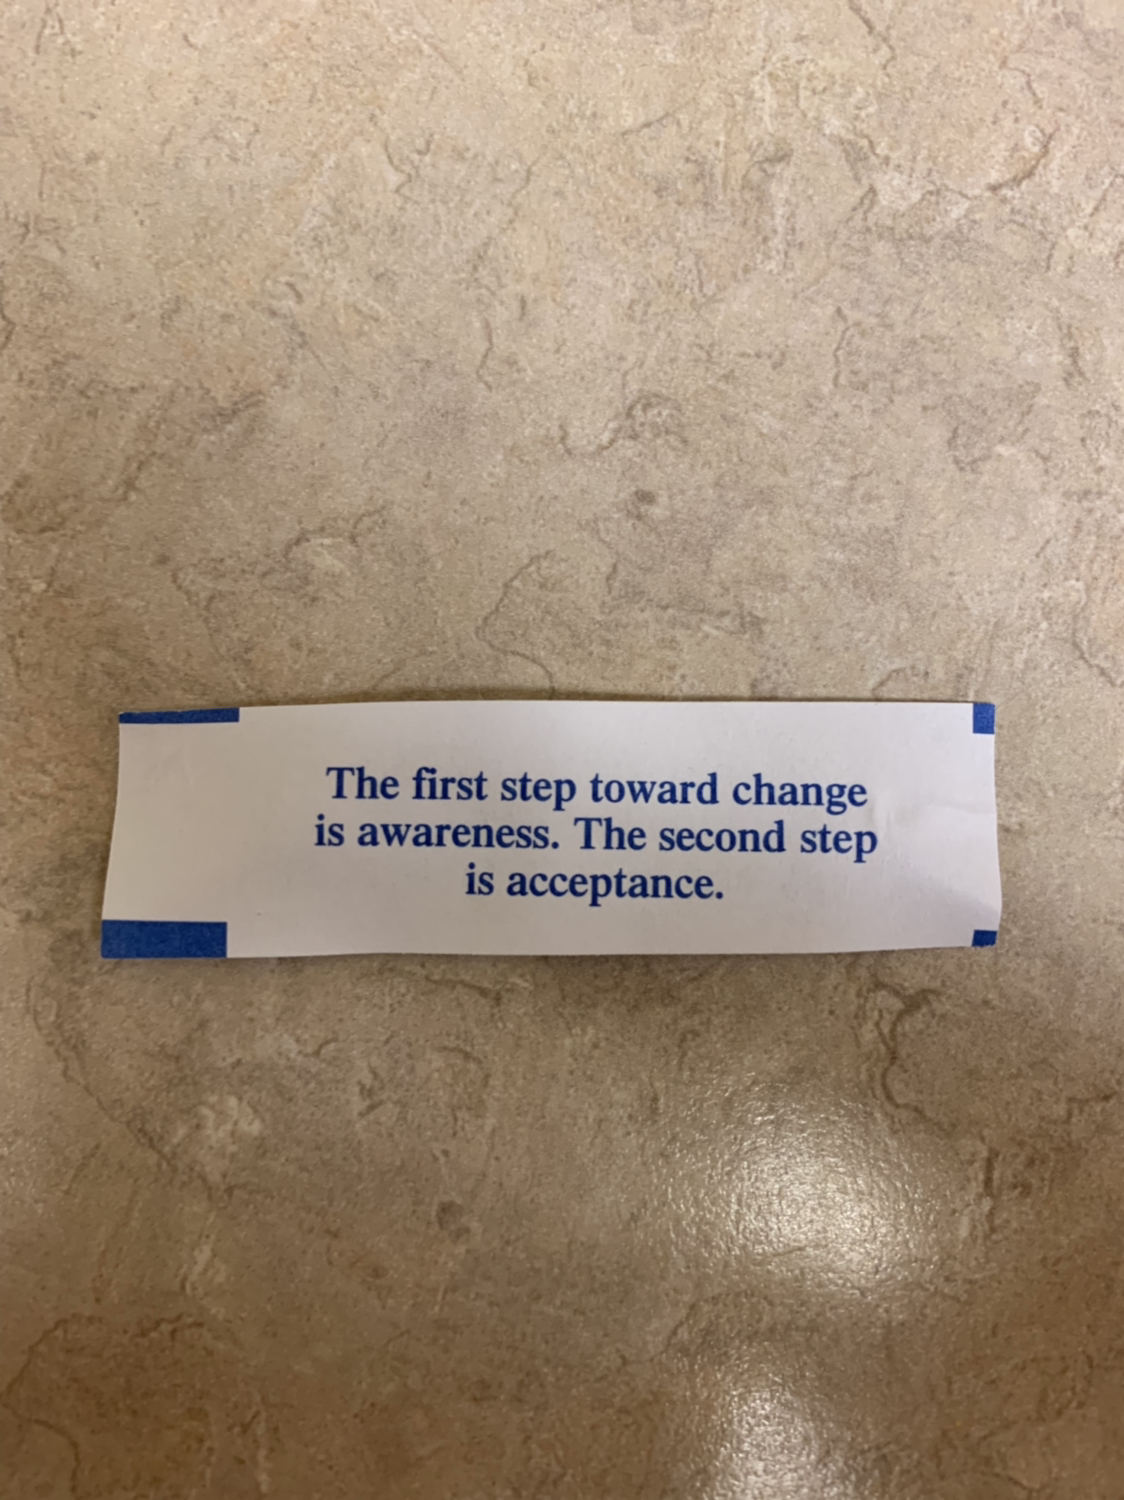 [Image] From a fortune cookie. The first two steps are always the hardest.